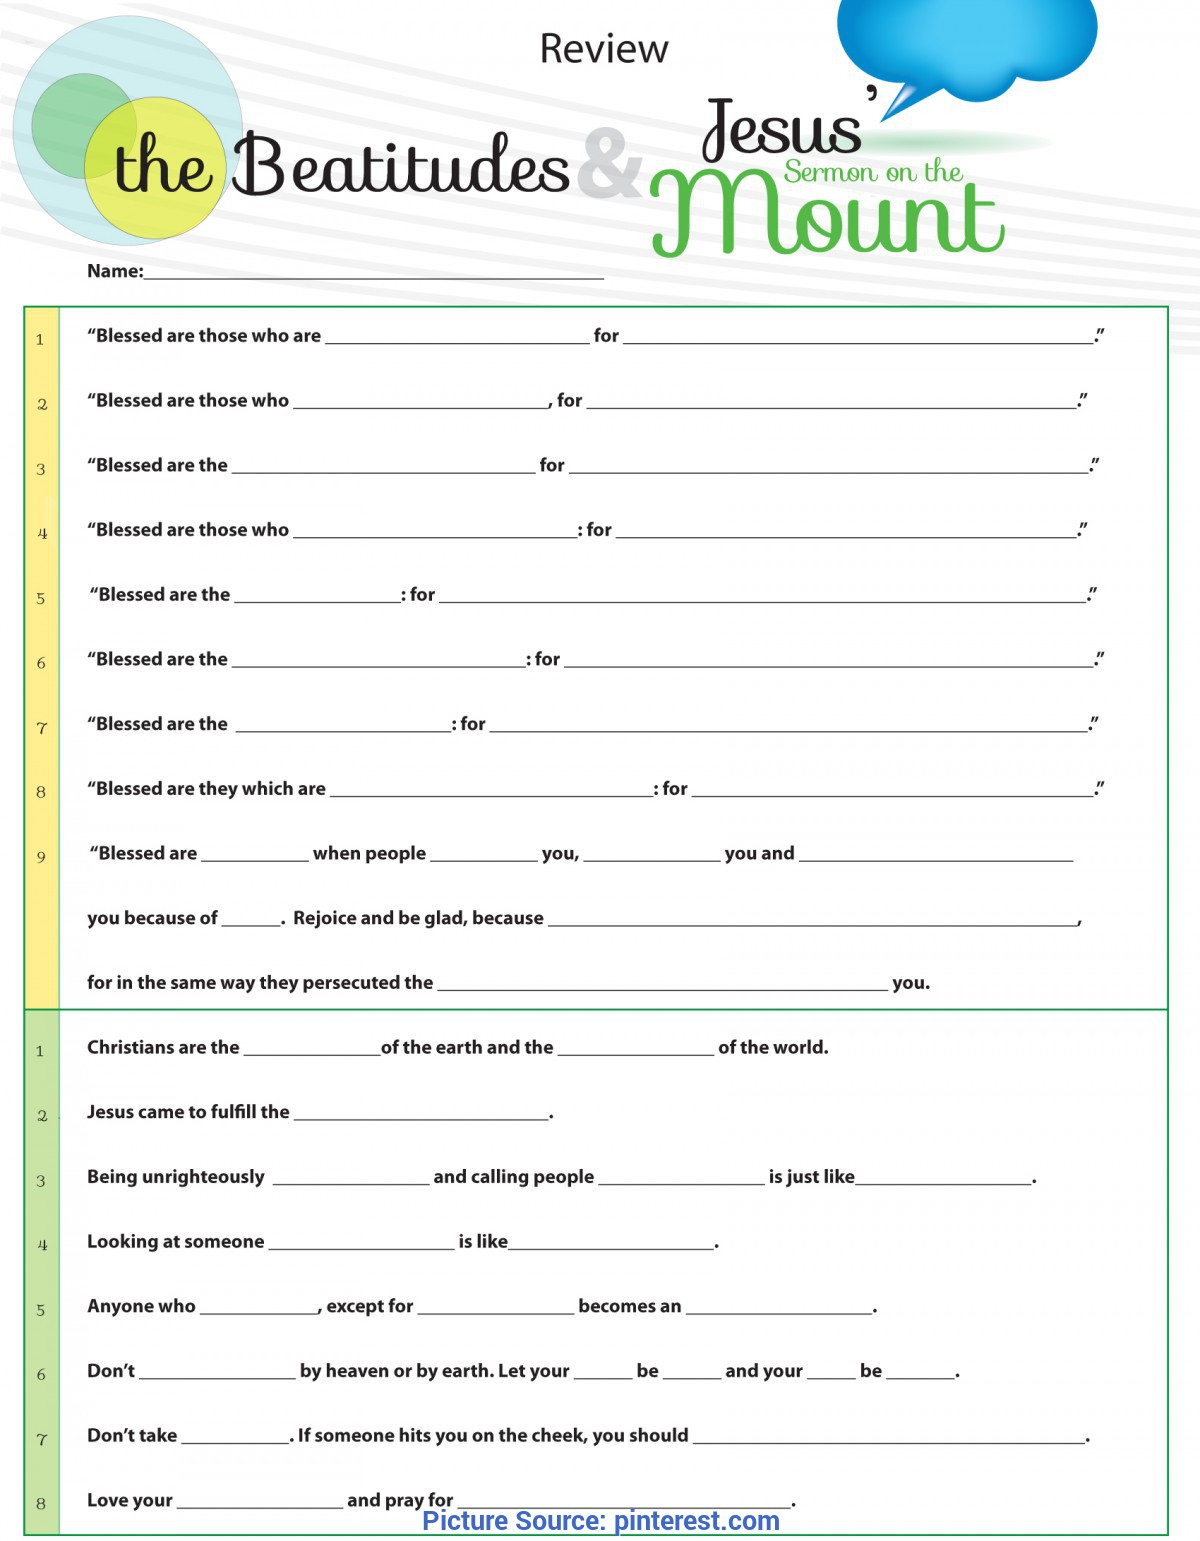 Unusual Lesson Plan For Sunday School Youth Worksheet To Teach Jesus Sermon On The Mount From Matthew Chapte